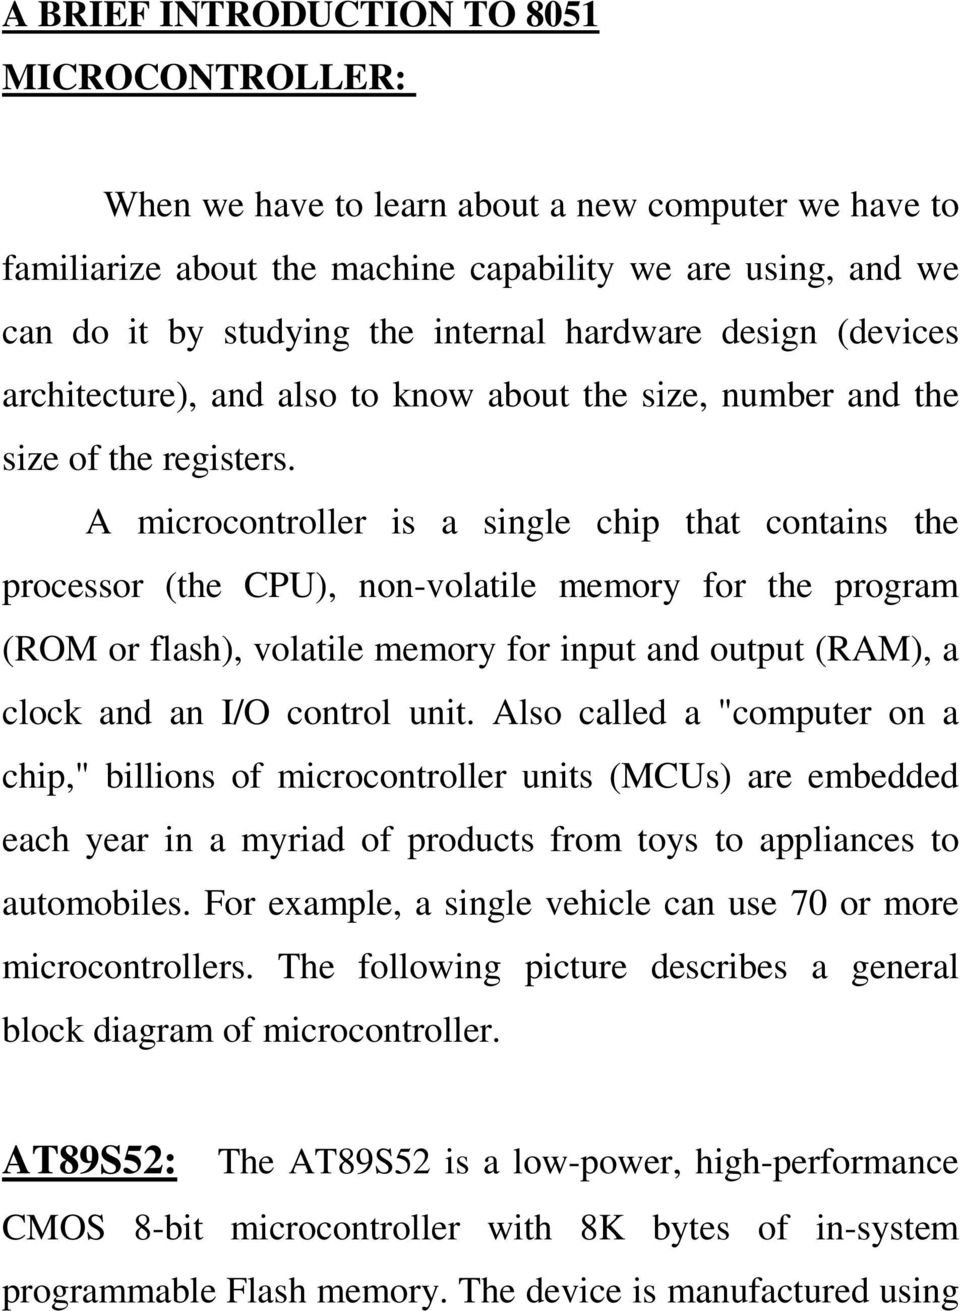 A microcontroller is a single chip that contains the processor (the CPU), non-volatile memory for the program (ROM or flash), volatile memory for input and output (RAM), a clock and an I/O control